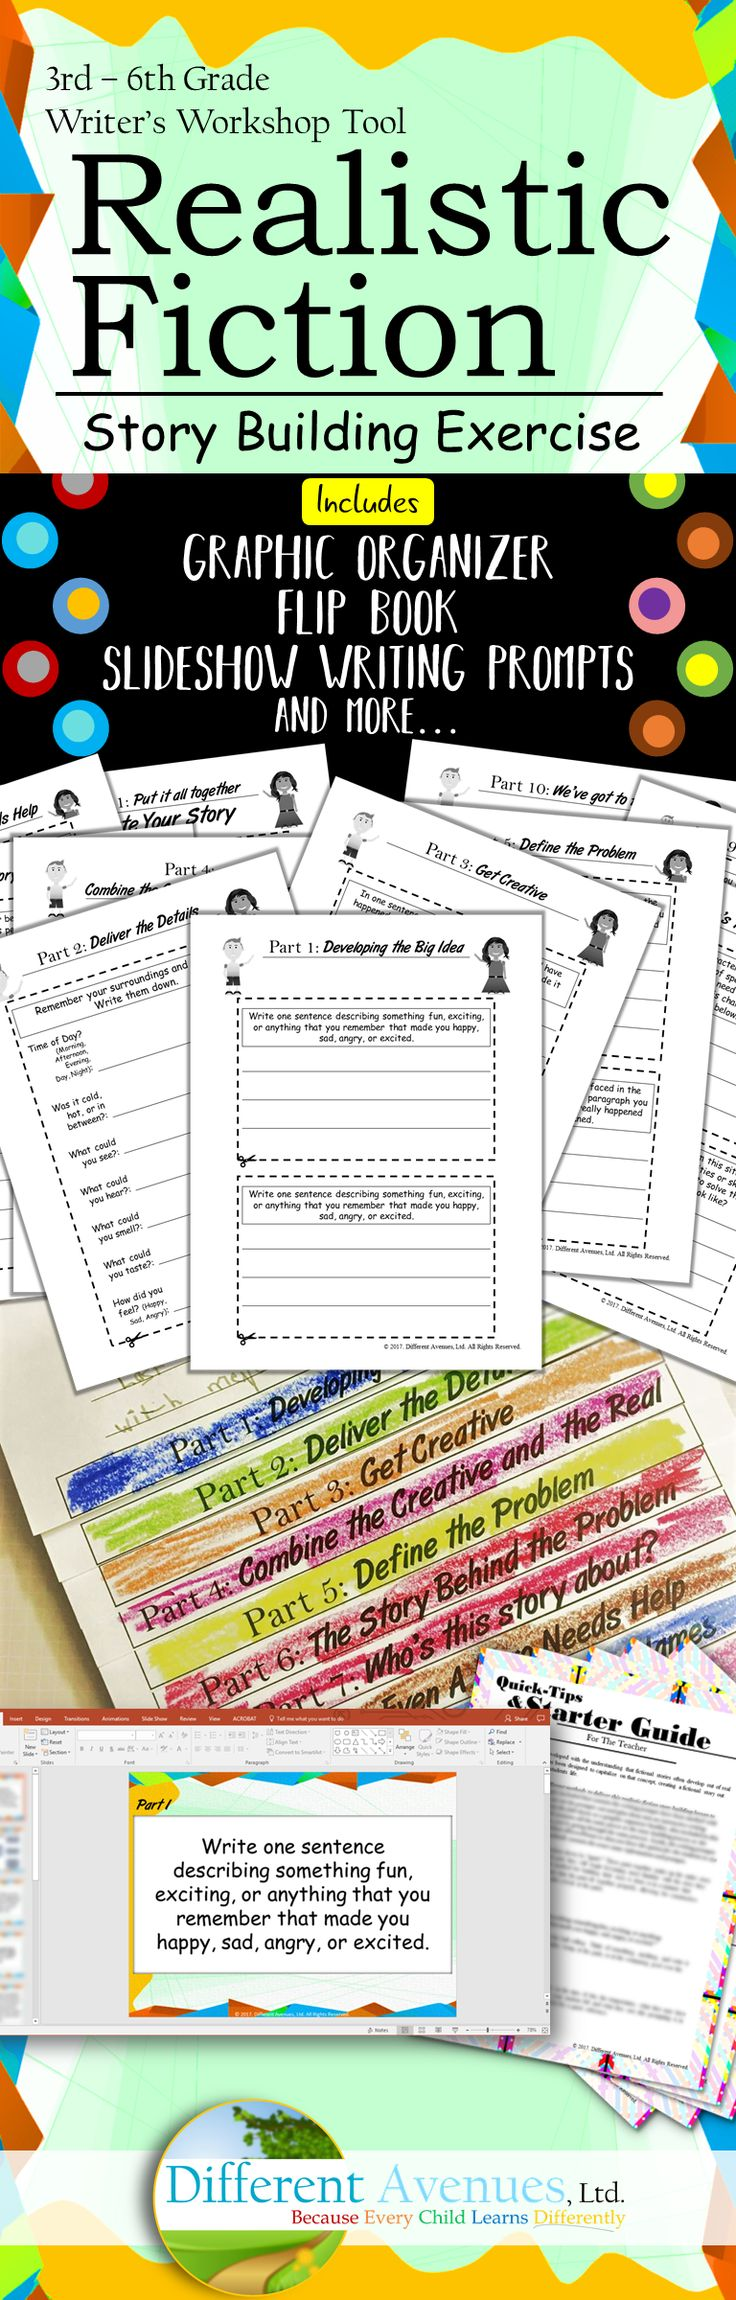 This Realistic Fiction Story building pack with Graphic Organizer, Flip Book, and Writing Prompts for 3rd - 6th Grade Writing Curriculum will get your students writing like a pro!!